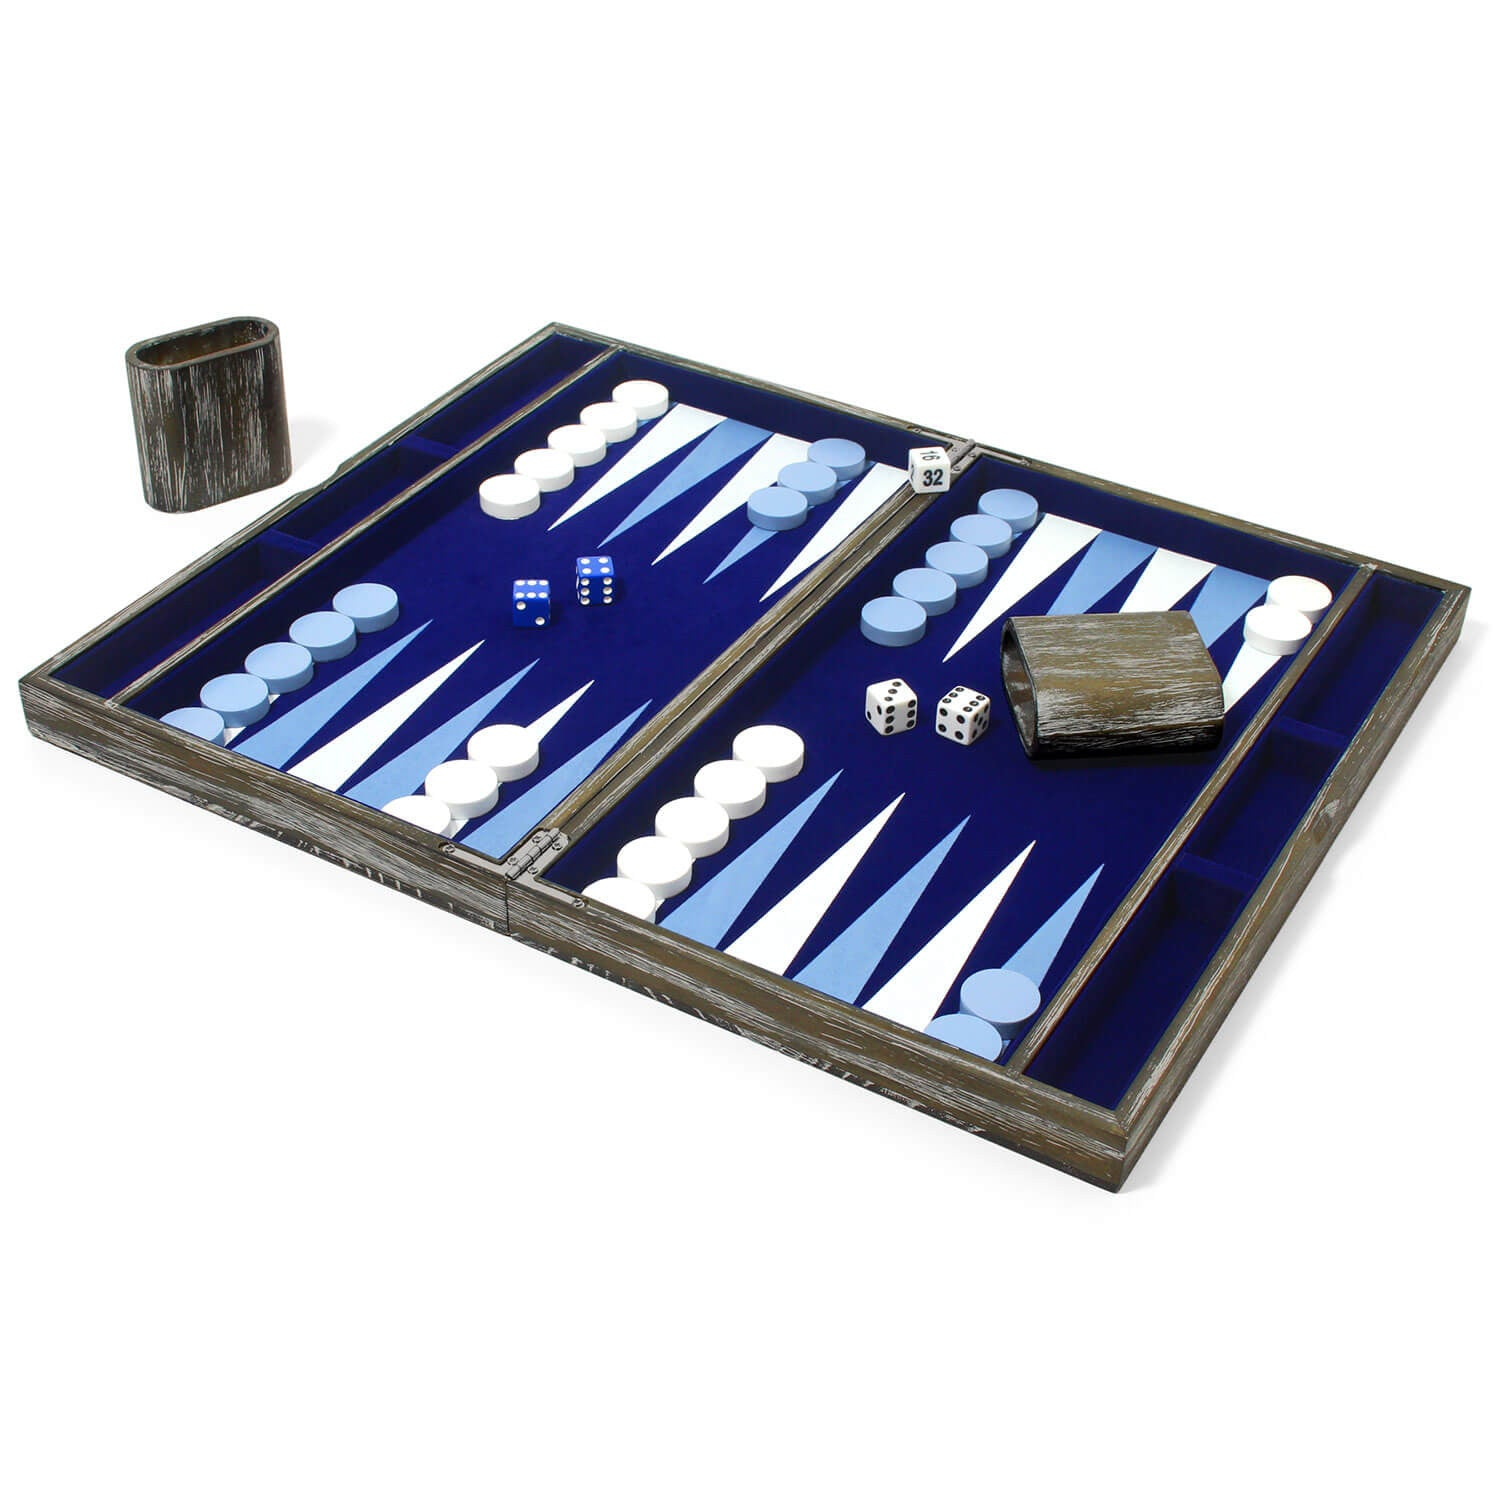 Vintage Backgammon Set